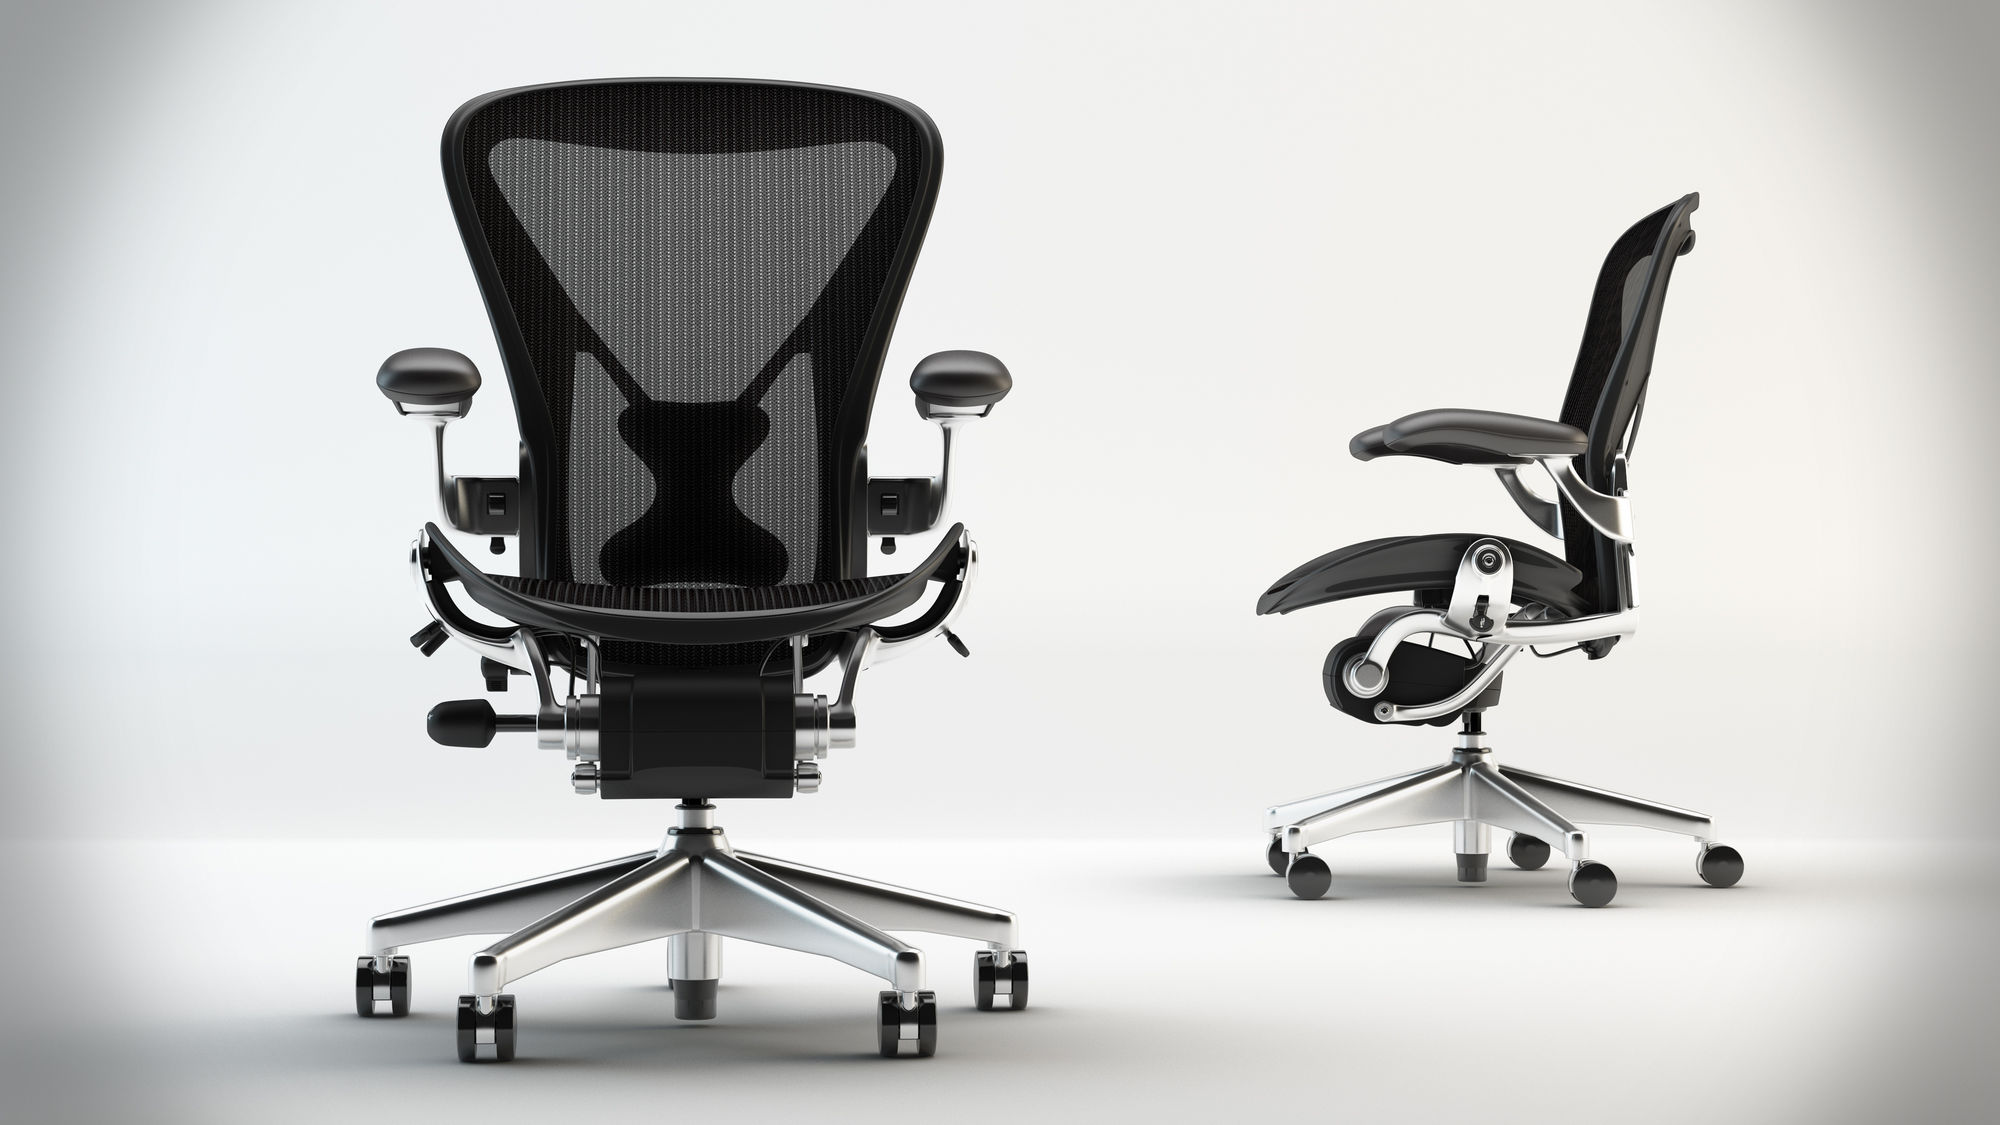 Best computer chair for gaming - Aeron Chair By Herman Miller